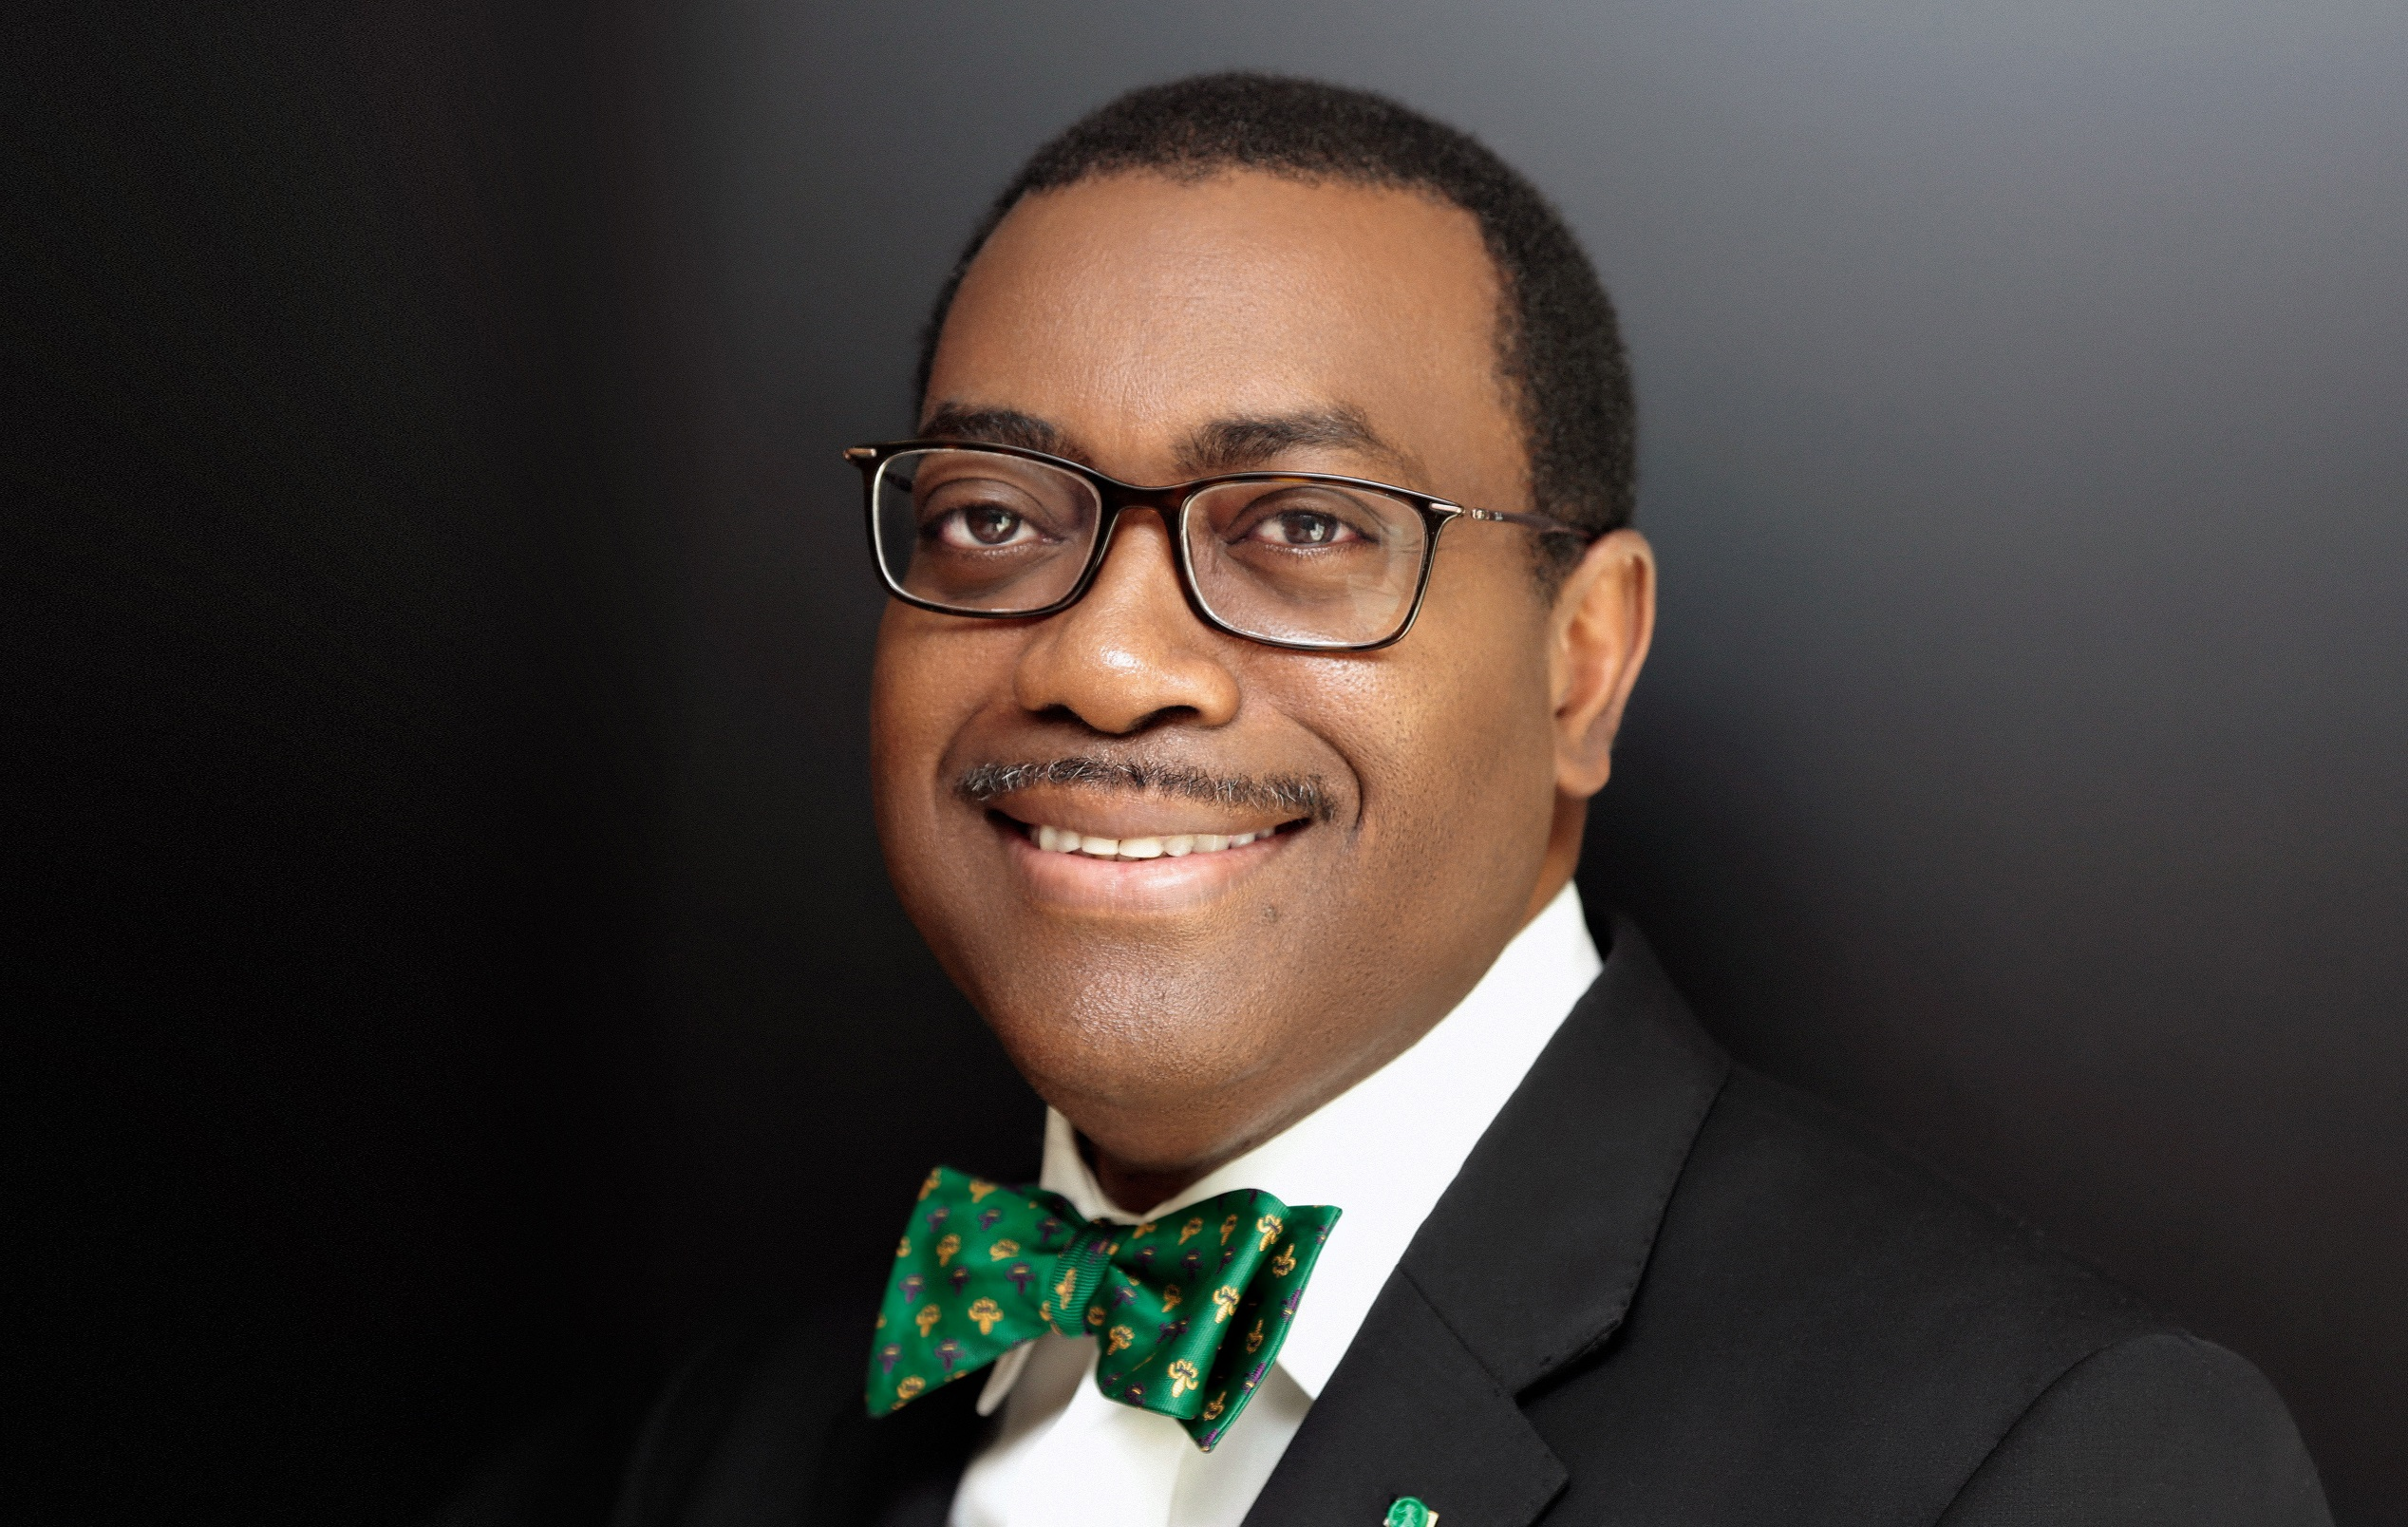 Meeting SGDs will be tougher now with COVID-19—Akinwuni Adesina